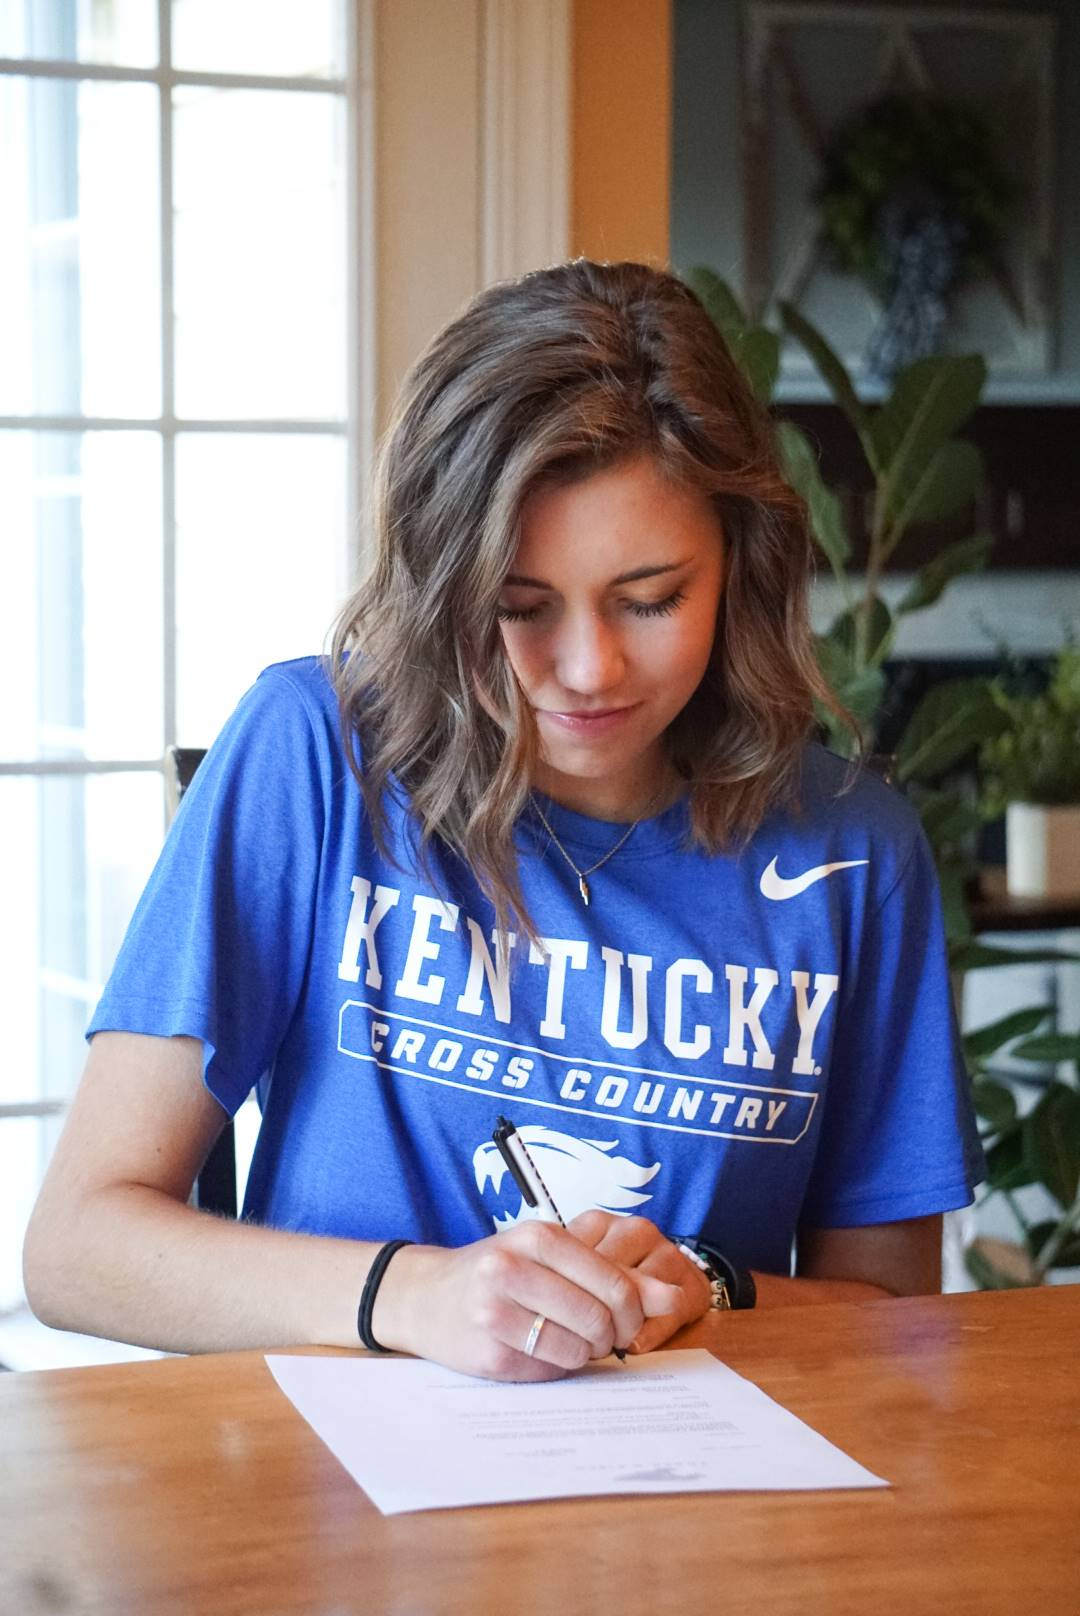 2020-21 Maggie Aydt - University of Kentucky - Cross Country/Track and Field